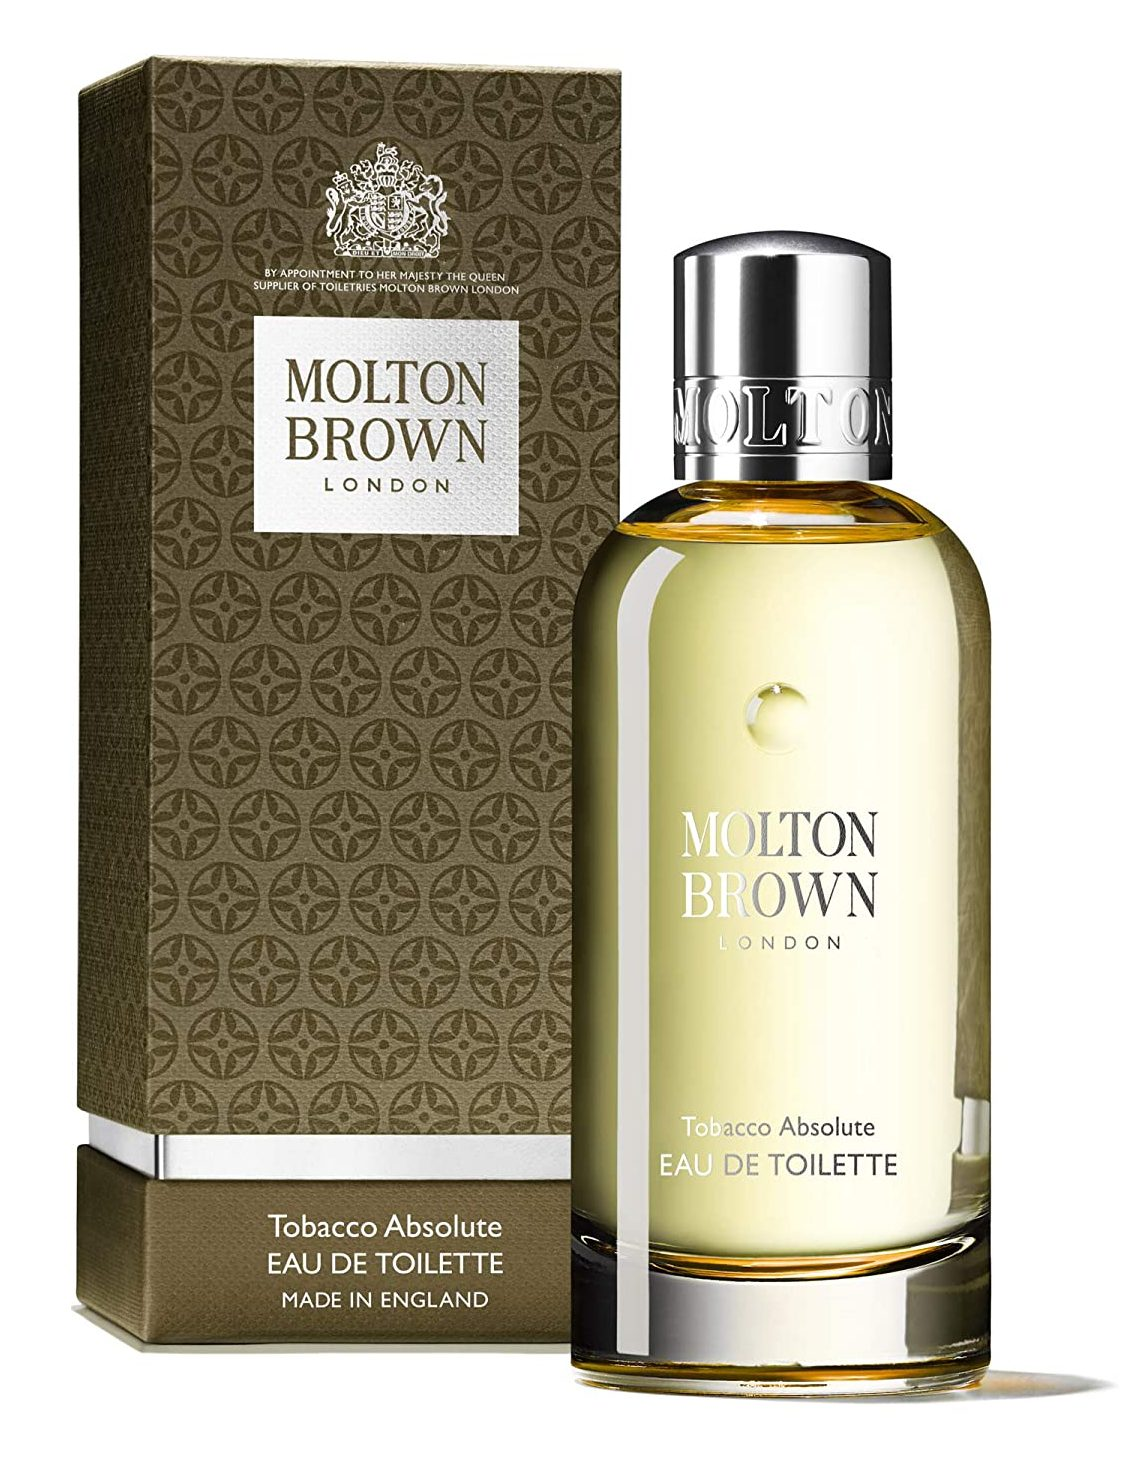 molton brown tobacco absolute bottle and box